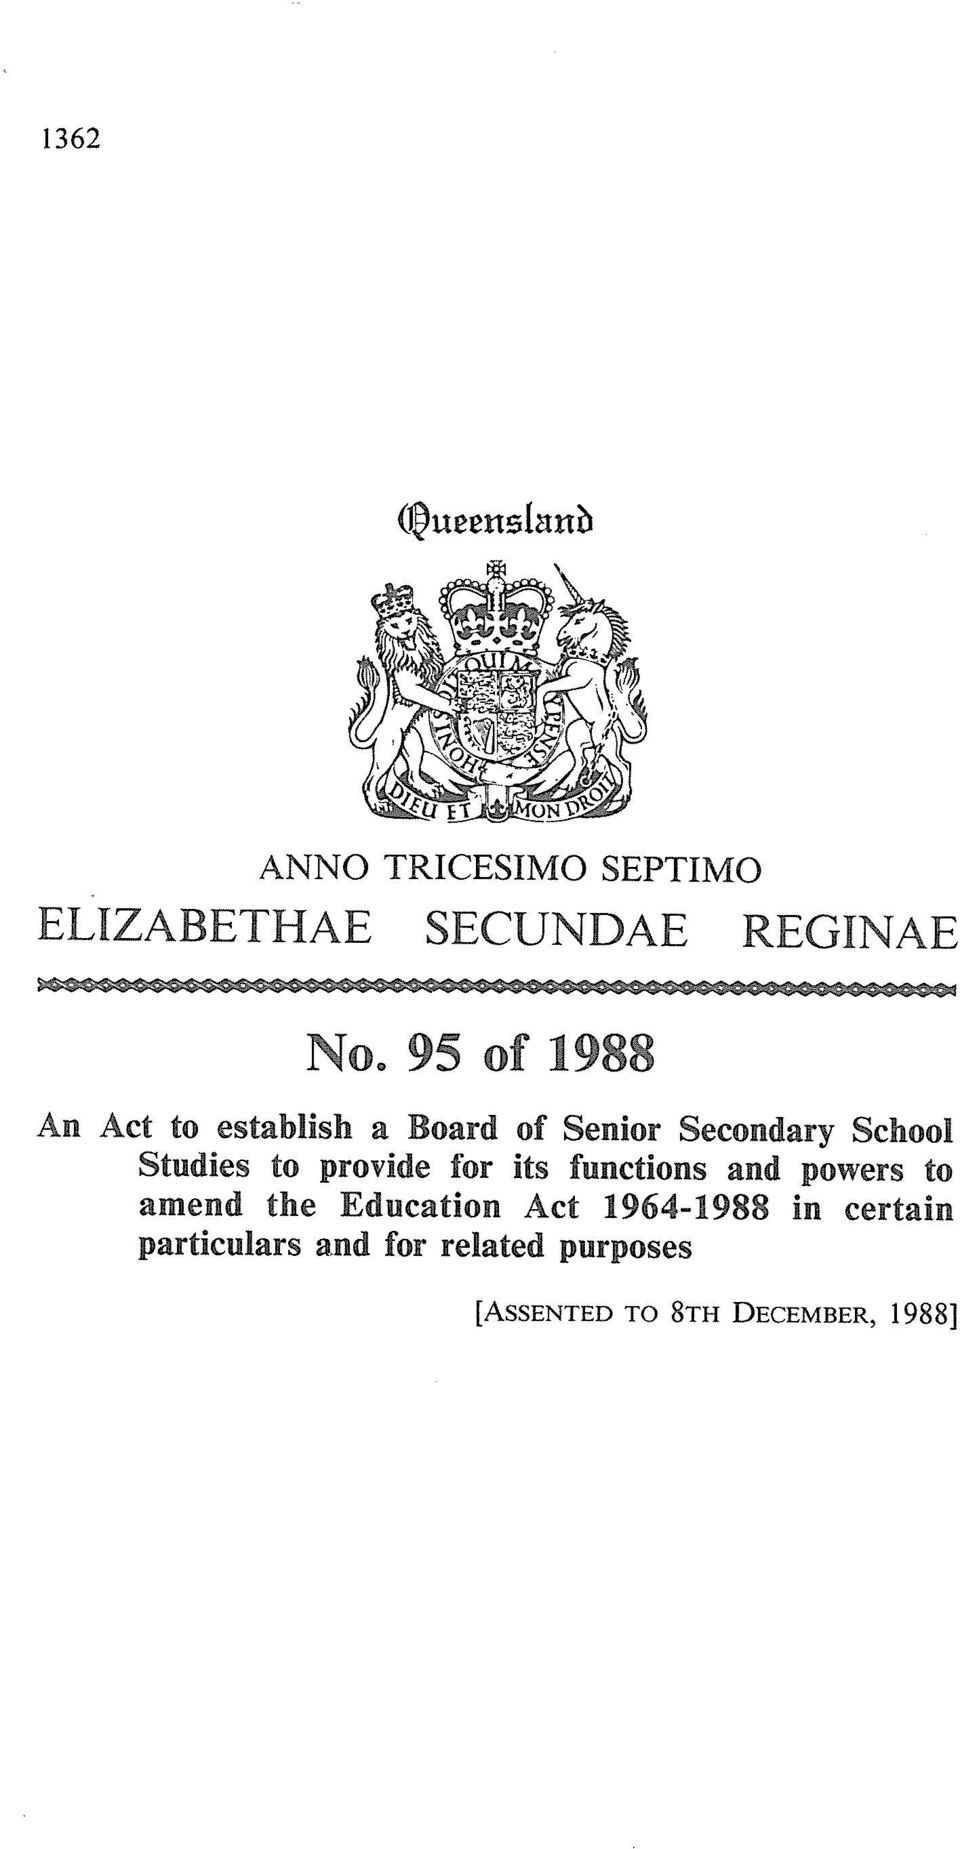 its functions and powers to amend the Education Act 1964-1988 in